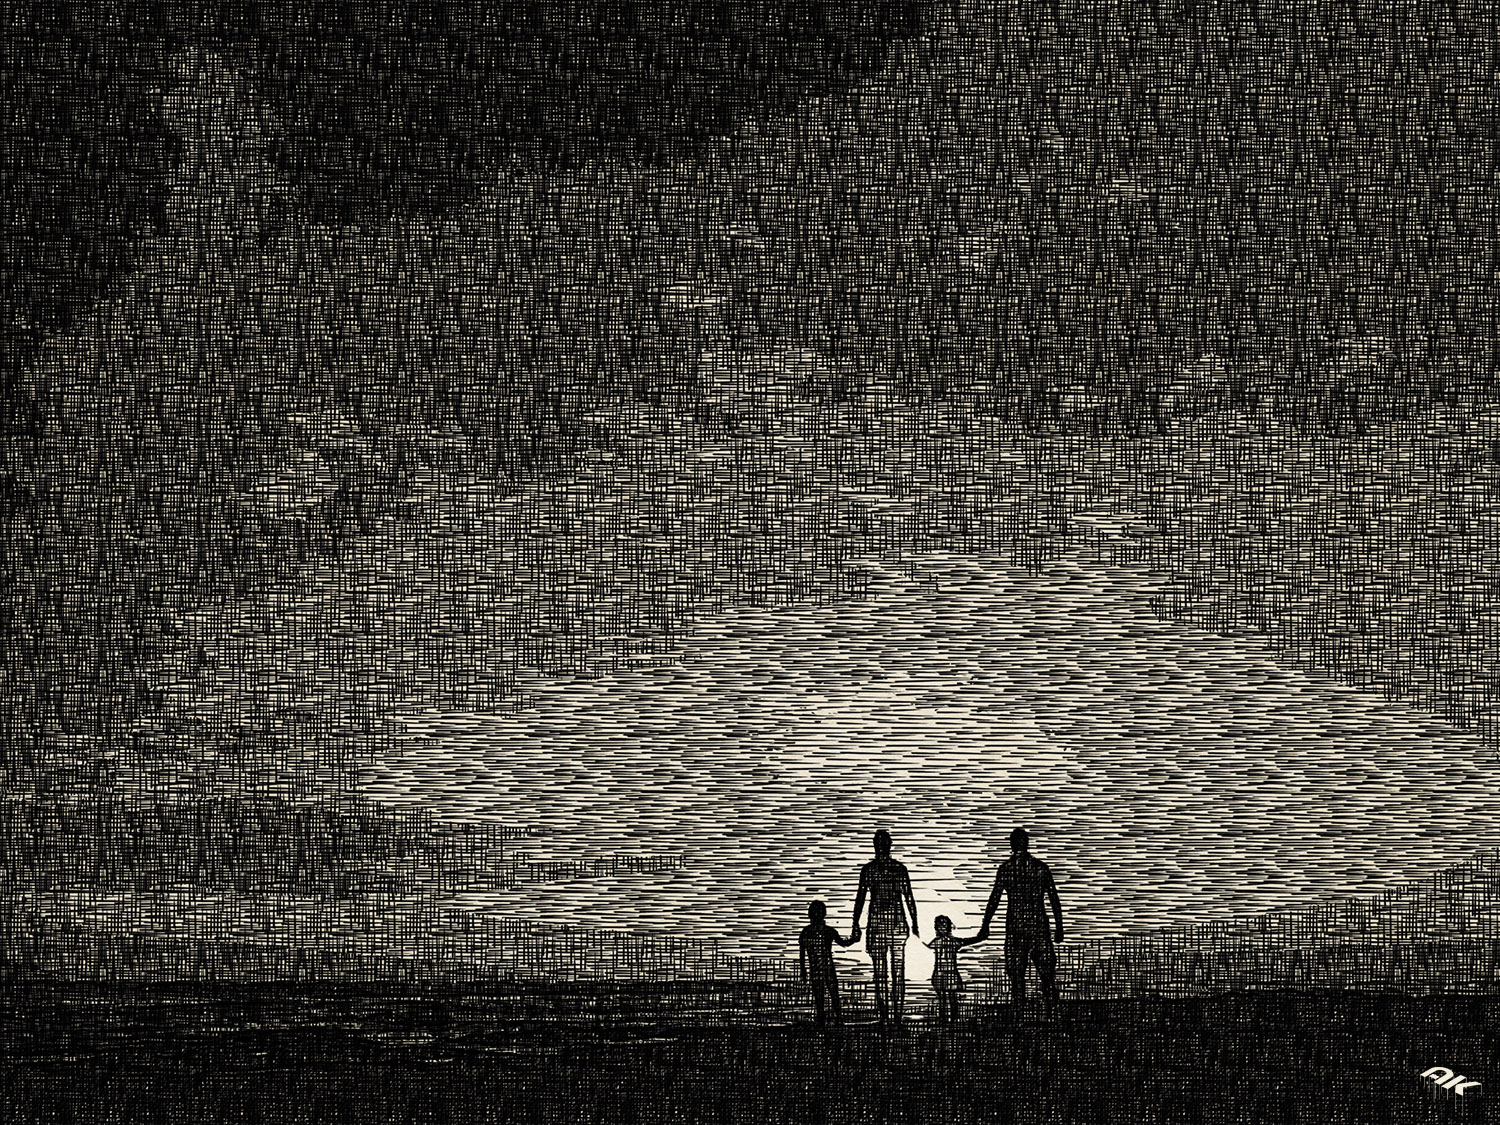 Family at sunset by the ocean. People hold hands and look at the